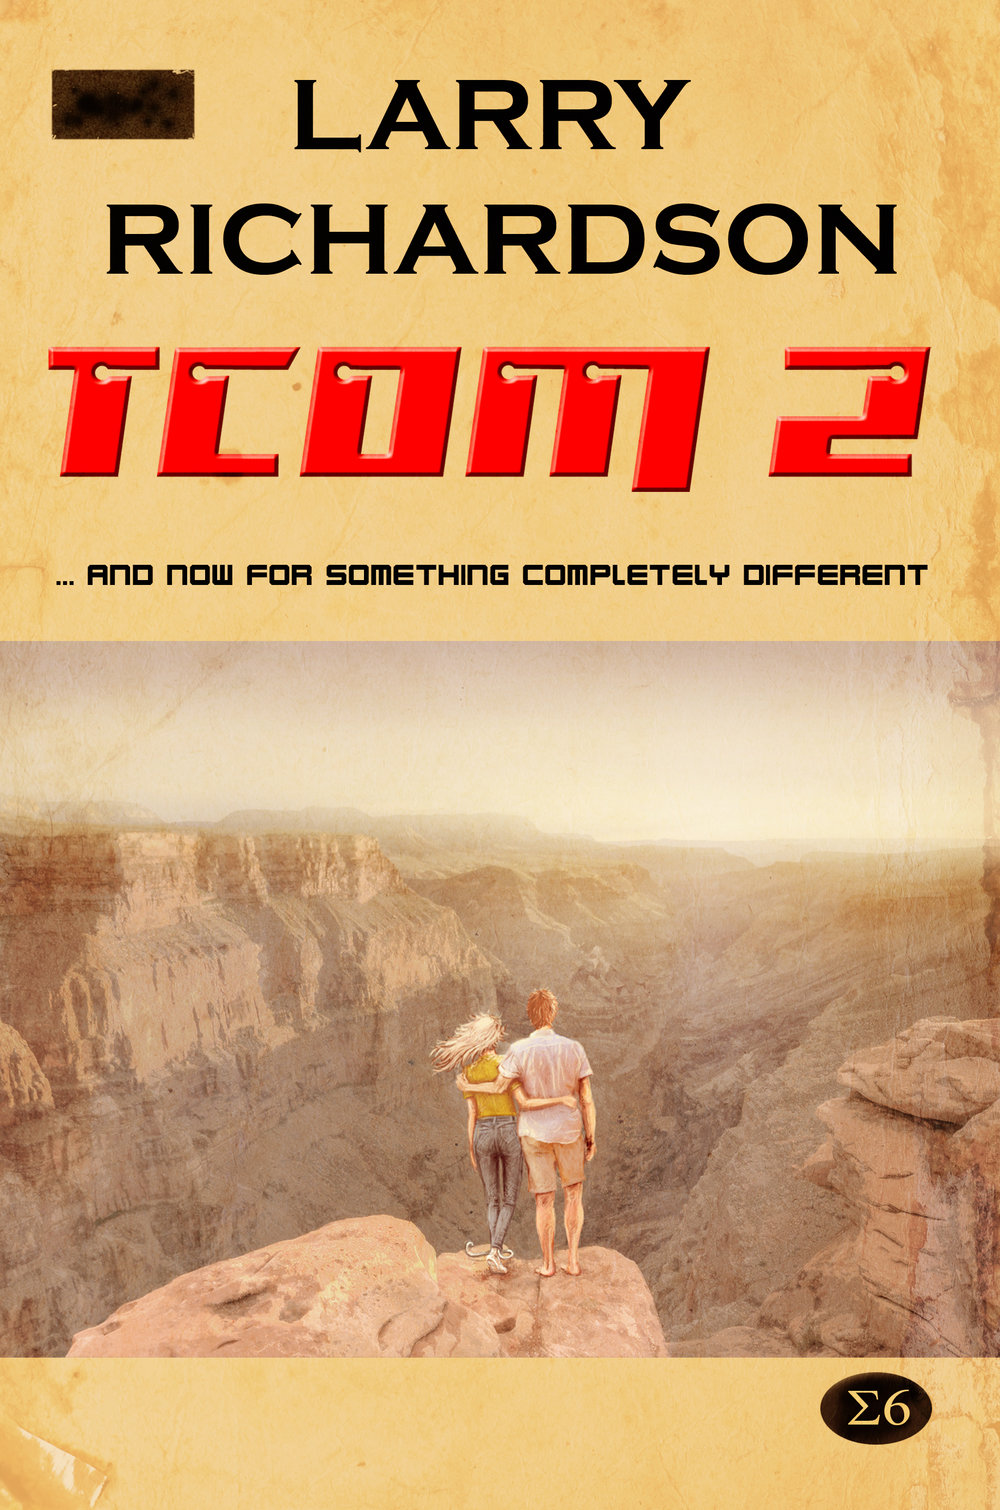 TCOM2 - The humans have returned, and they have come in their thousands, but this time they have not come as explorers, but as settlers, and the Martian AIs, divided against and within themselves, find that they are displaced in new and alarming ways. They must adapt, and the planet must adapt with them, but unknown to the arriving droves, something ancient is stirring within the Martian crust.I've read it (of course, I know). A tough read. Don't read it if you found TCOM1 to be complete and satisfying, 'cause this is like walking out of a dark cave into harsh sunlight. (And that is not Louise on the cover!) Or is it?